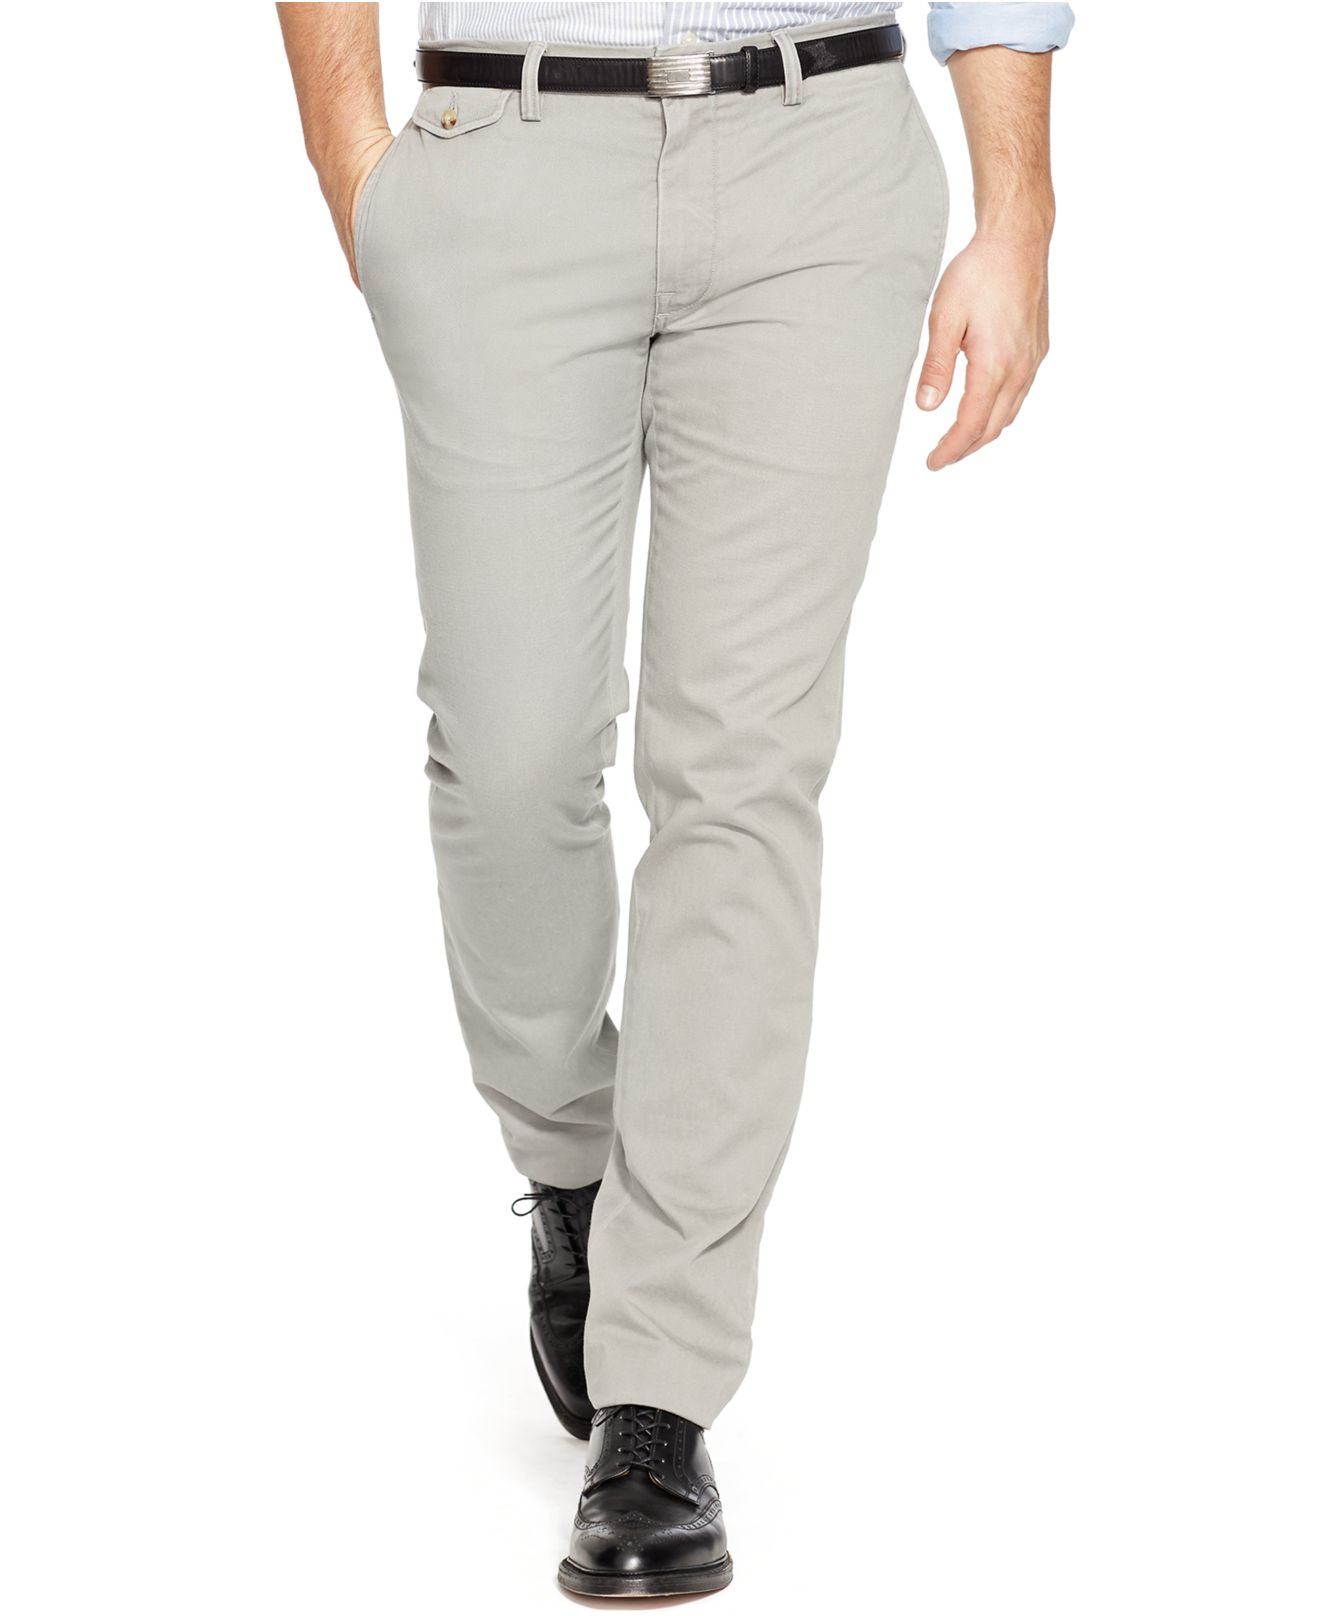 066fae7888e4f Lyst - Polo Ralph Lauren Slim-fit Bedford Chino Pants in Gray for Men